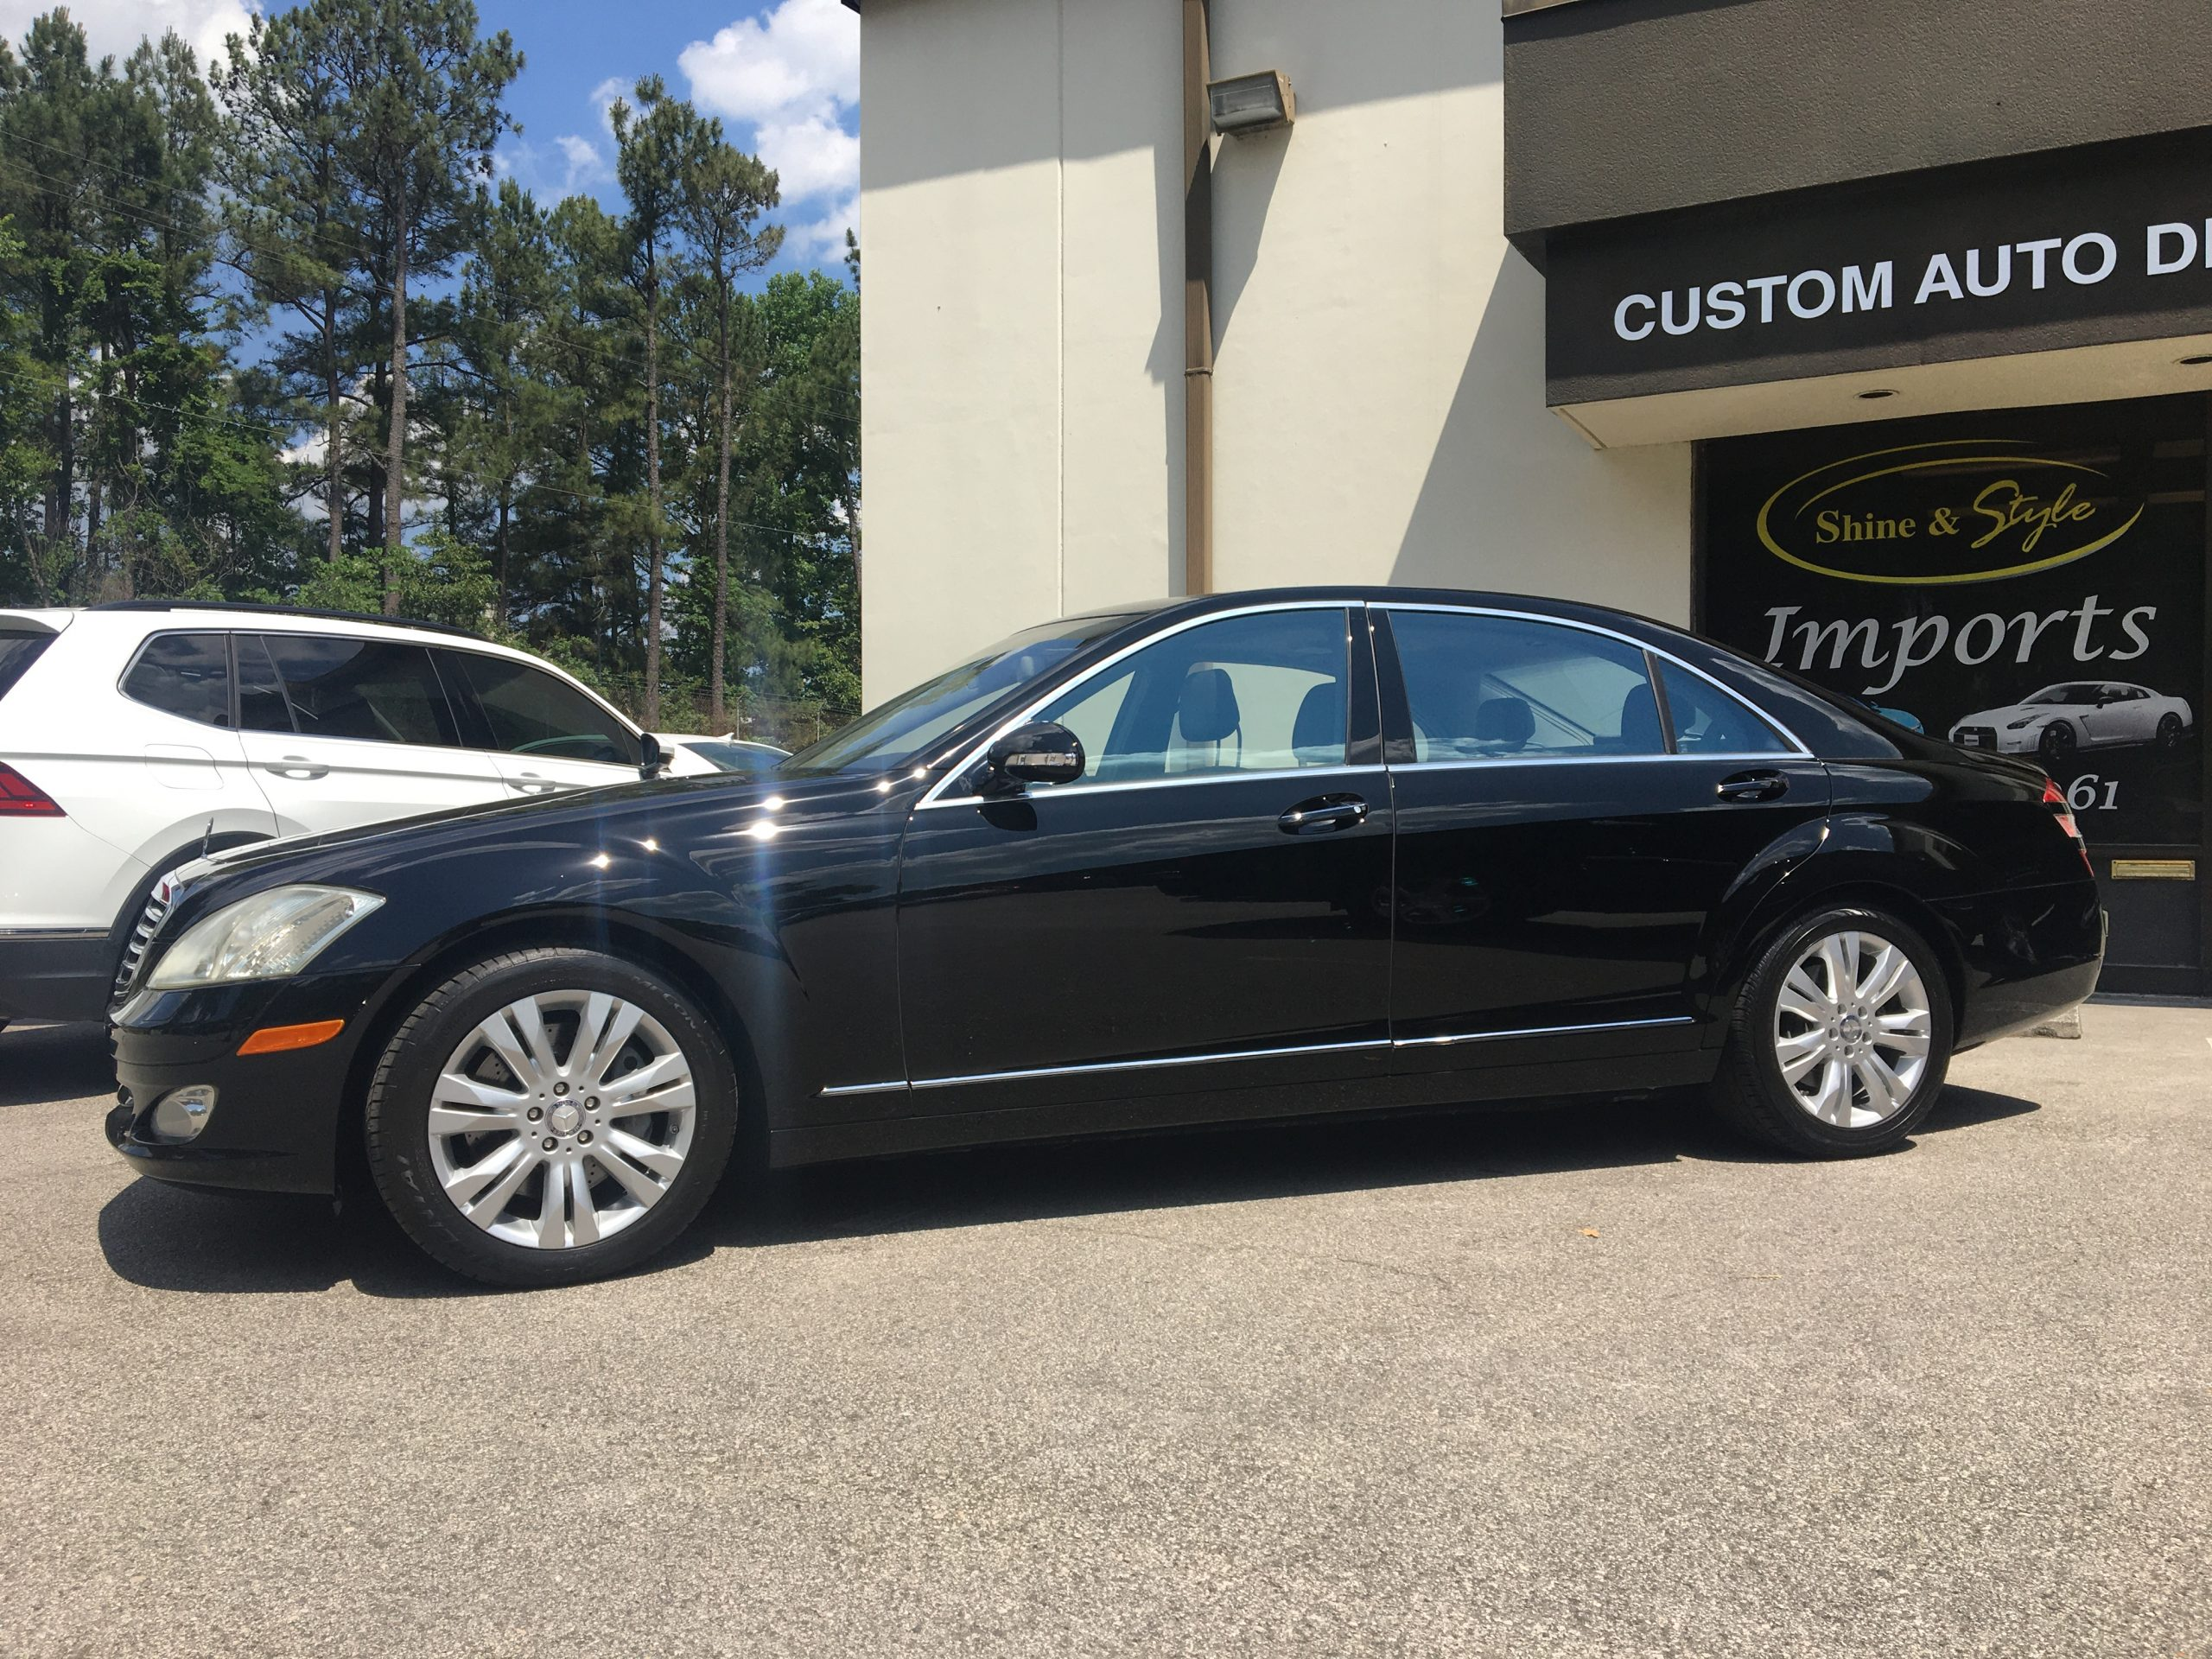 Used cars for sale Raleigh